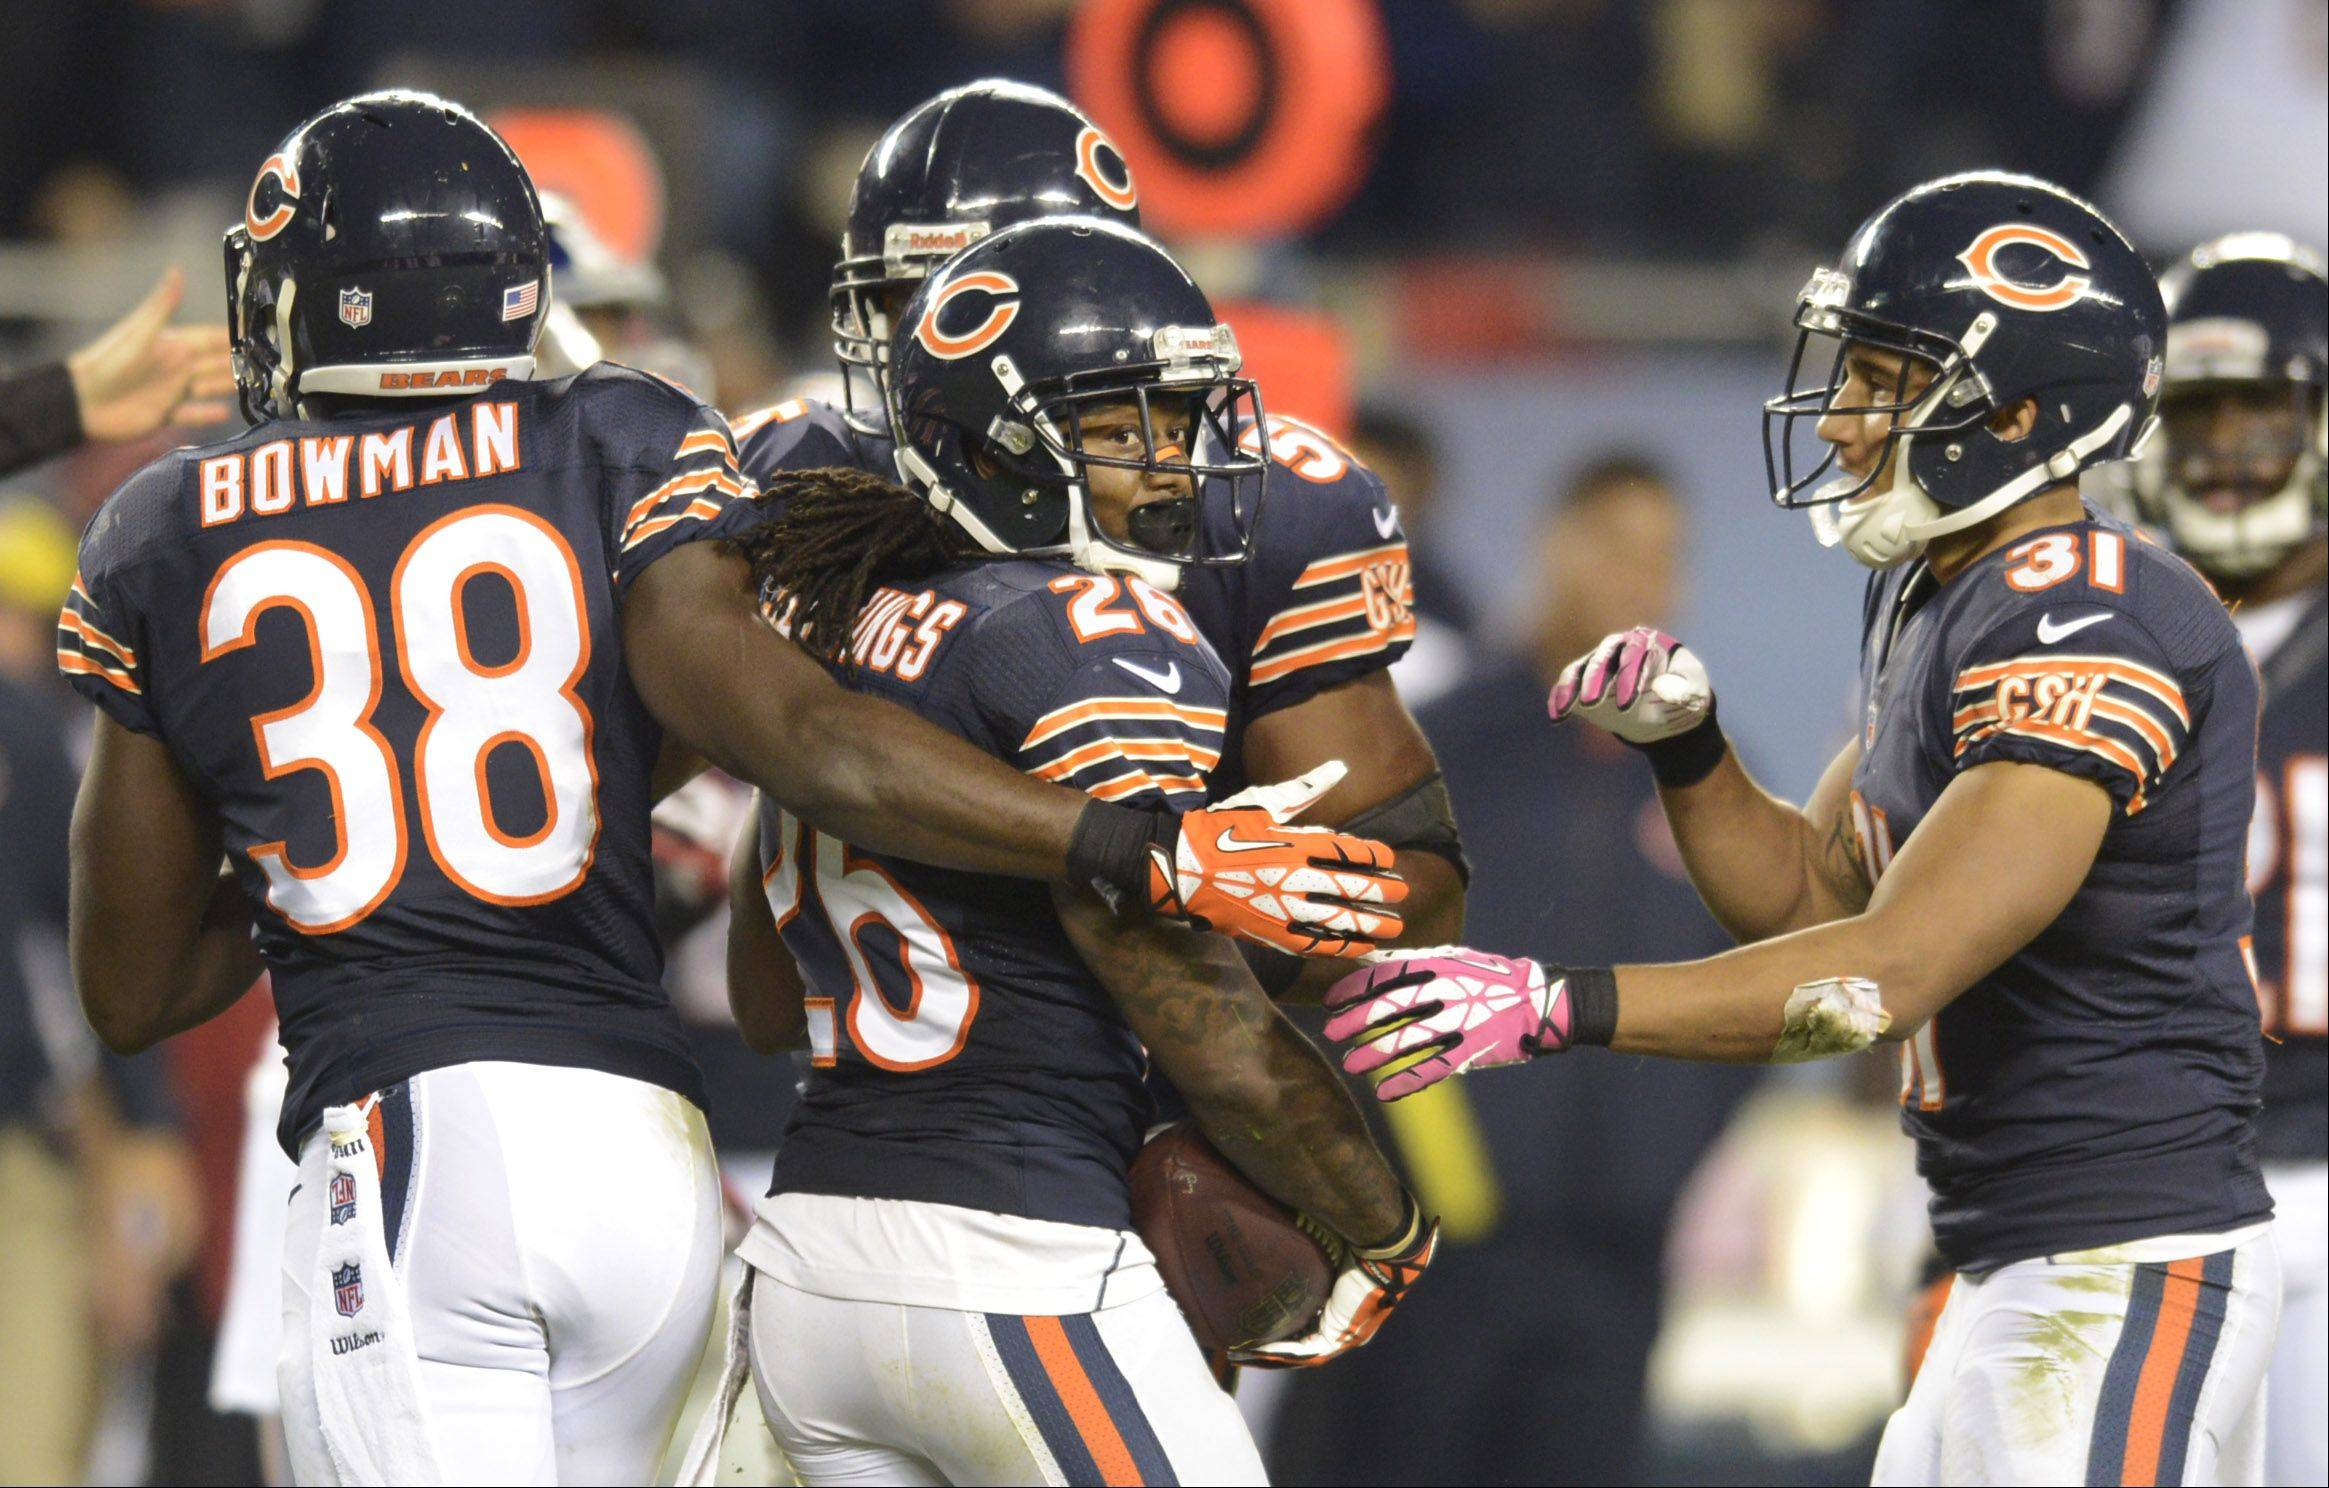 Chicago Bears cornerback Tim Jennings, middle, celebrates with his teammates including Zack Bowman, left, and Isaiah Frey after a key fourth-quarter interception.